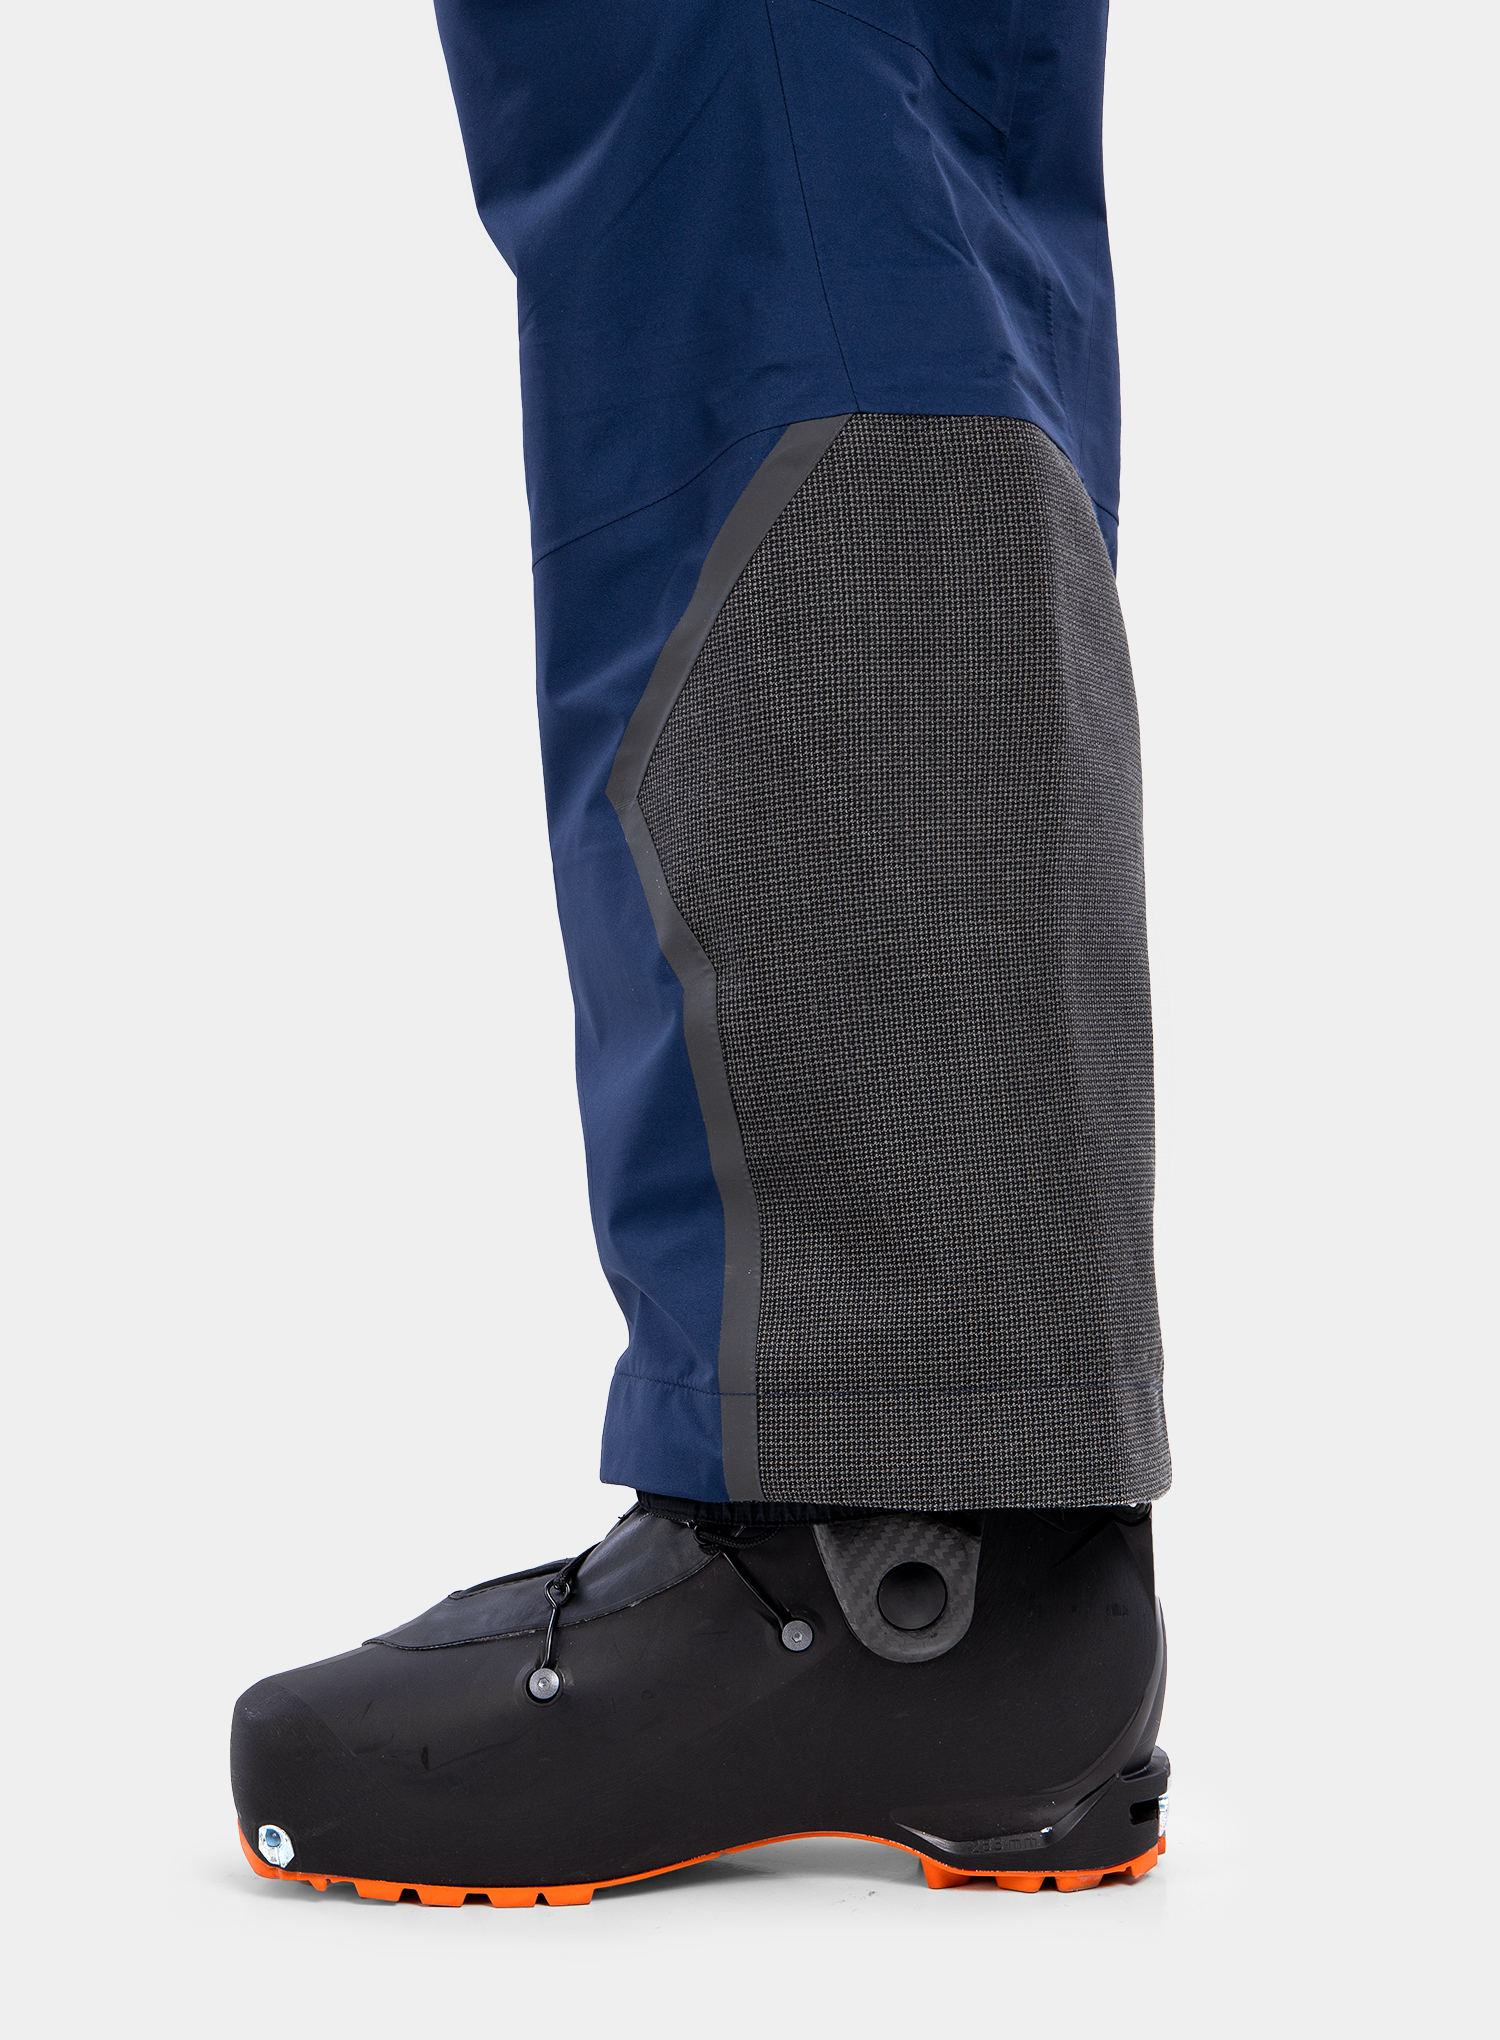 Spodnie GORE-TEX BlackYak Brangus Pants - dress blues - zdjęcie nr. 12